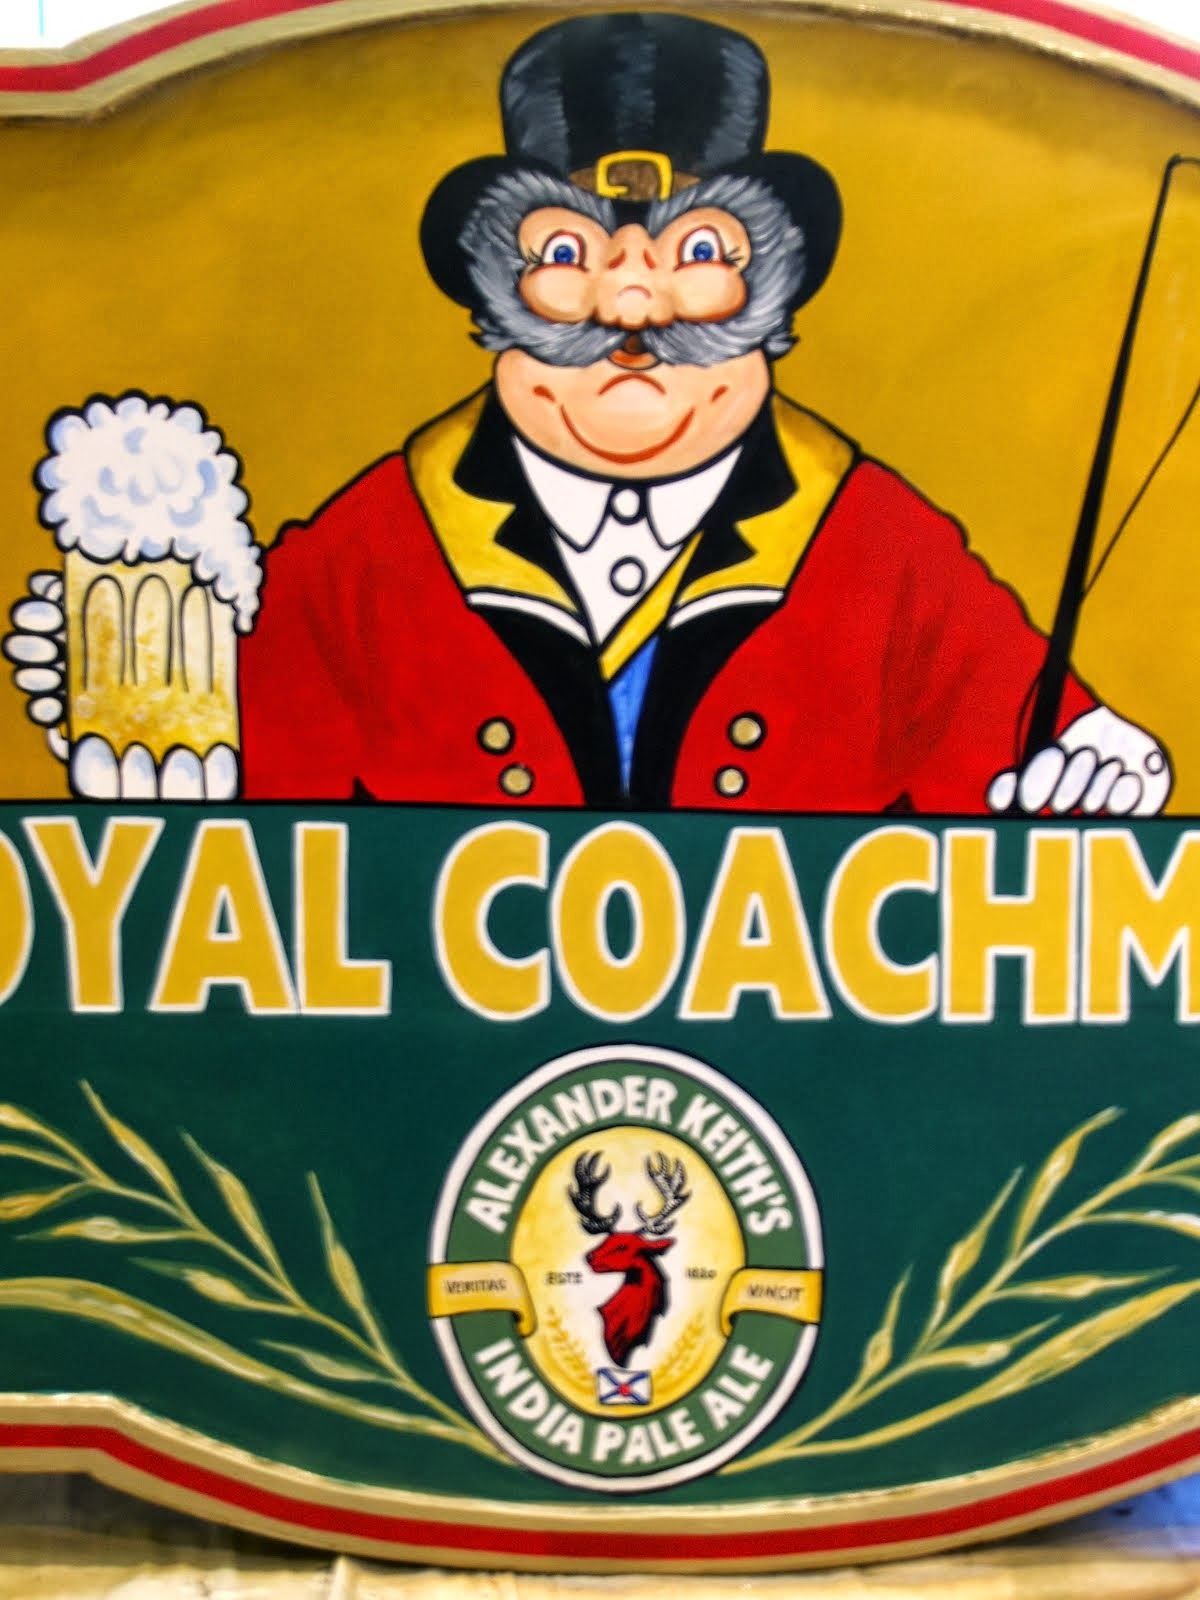 The Royal Coachman